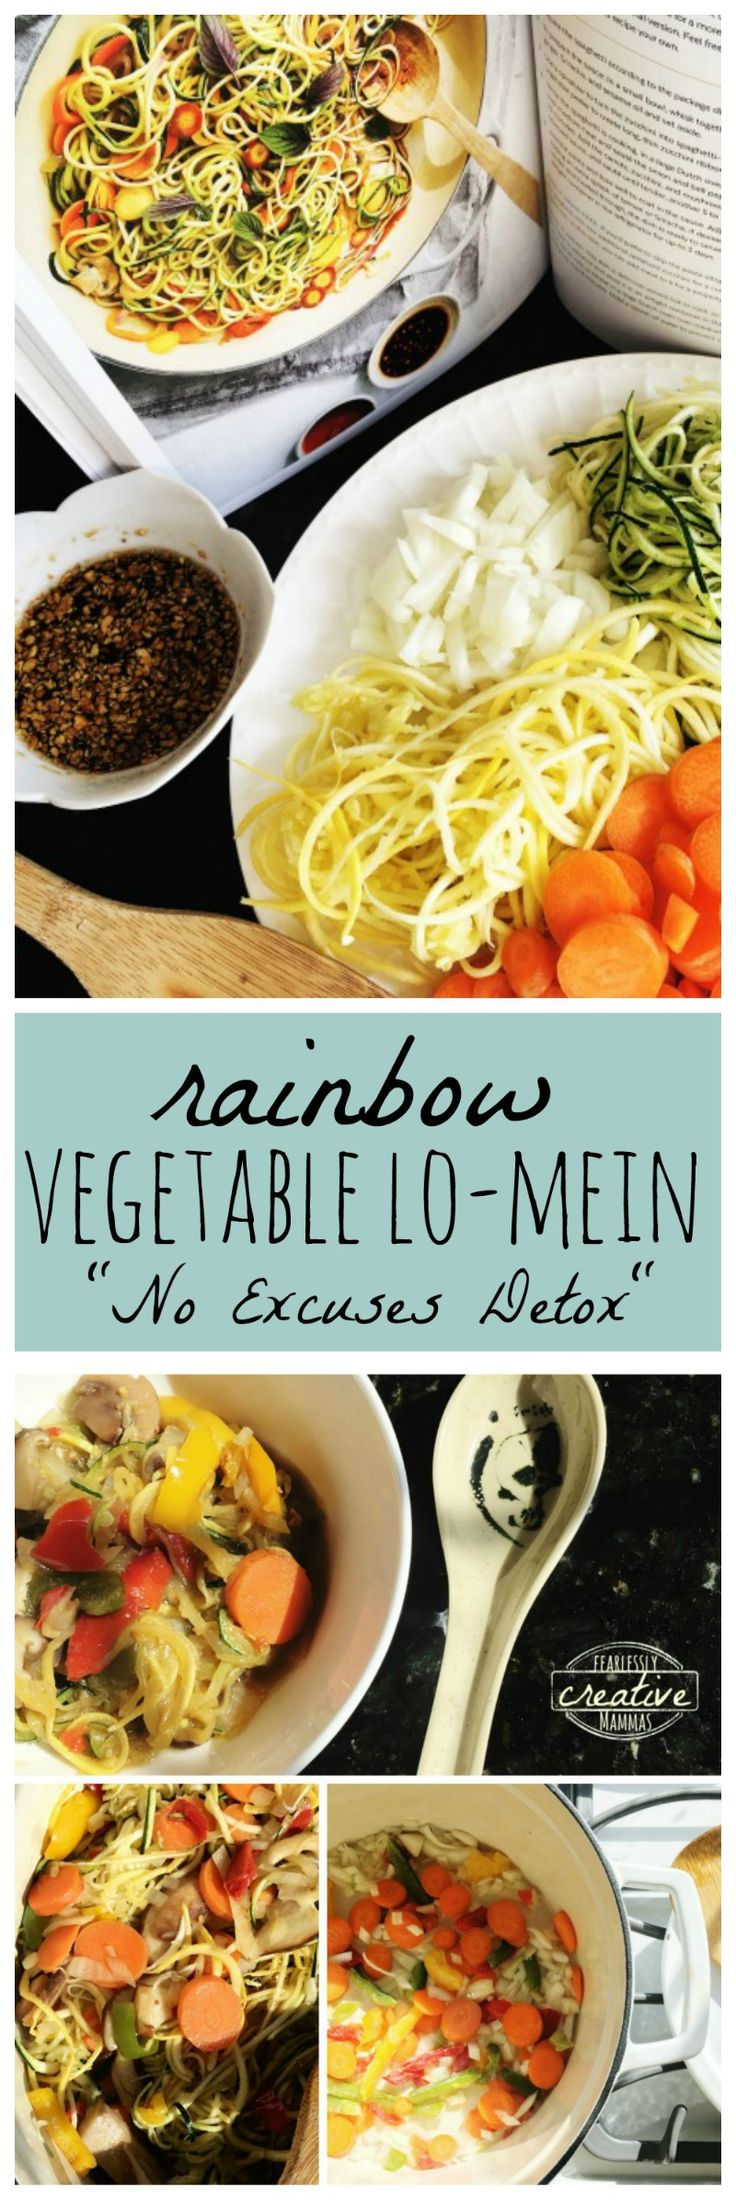 """Now is the time to get those yummy spring vegetables on your plate with the Rainbow Vegetable Lo-Mein recipe.   """"REPRINTED WITH PERMISSION FROM NO EXCUSES DETOX, COPYRIGHT © 2017 BY MEGAN GILMORE, PUBLISHED BY TEN SPEED PRESS, AN IMPRINT OF PENGUIN RANDOM HOUSE LLC."""""""